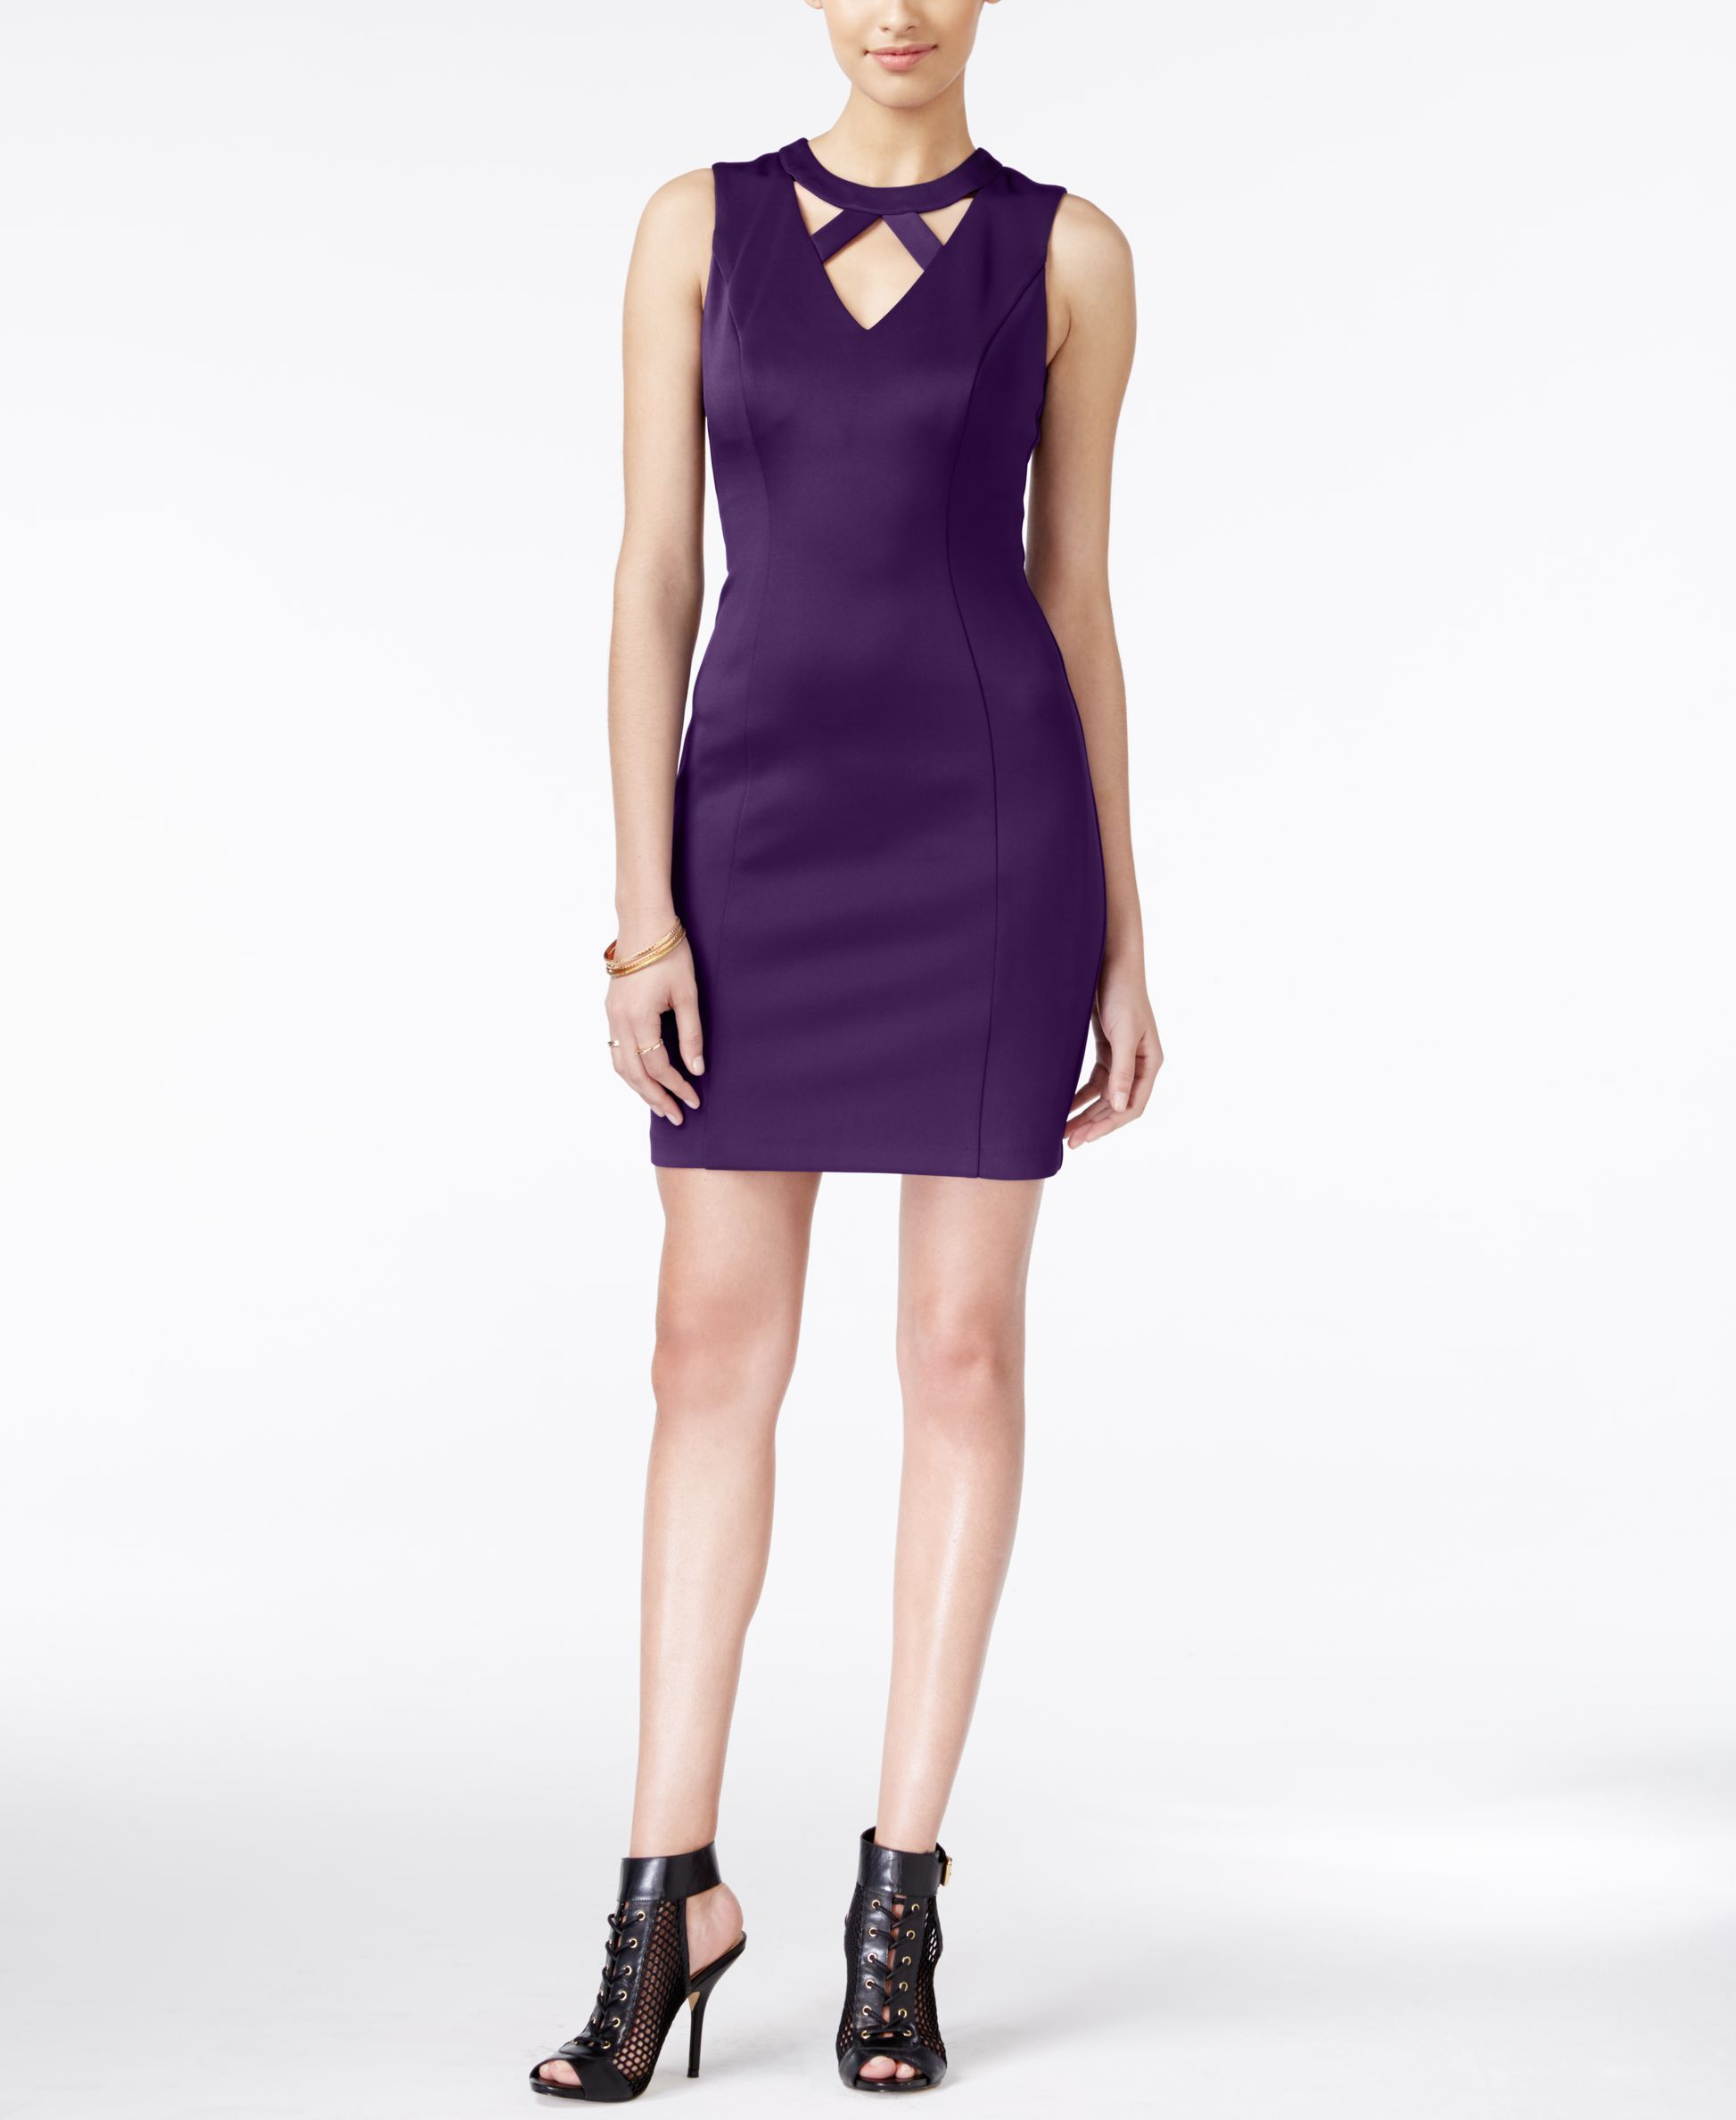 Guess Cutout Bodycon Dress | Products | Pinterest